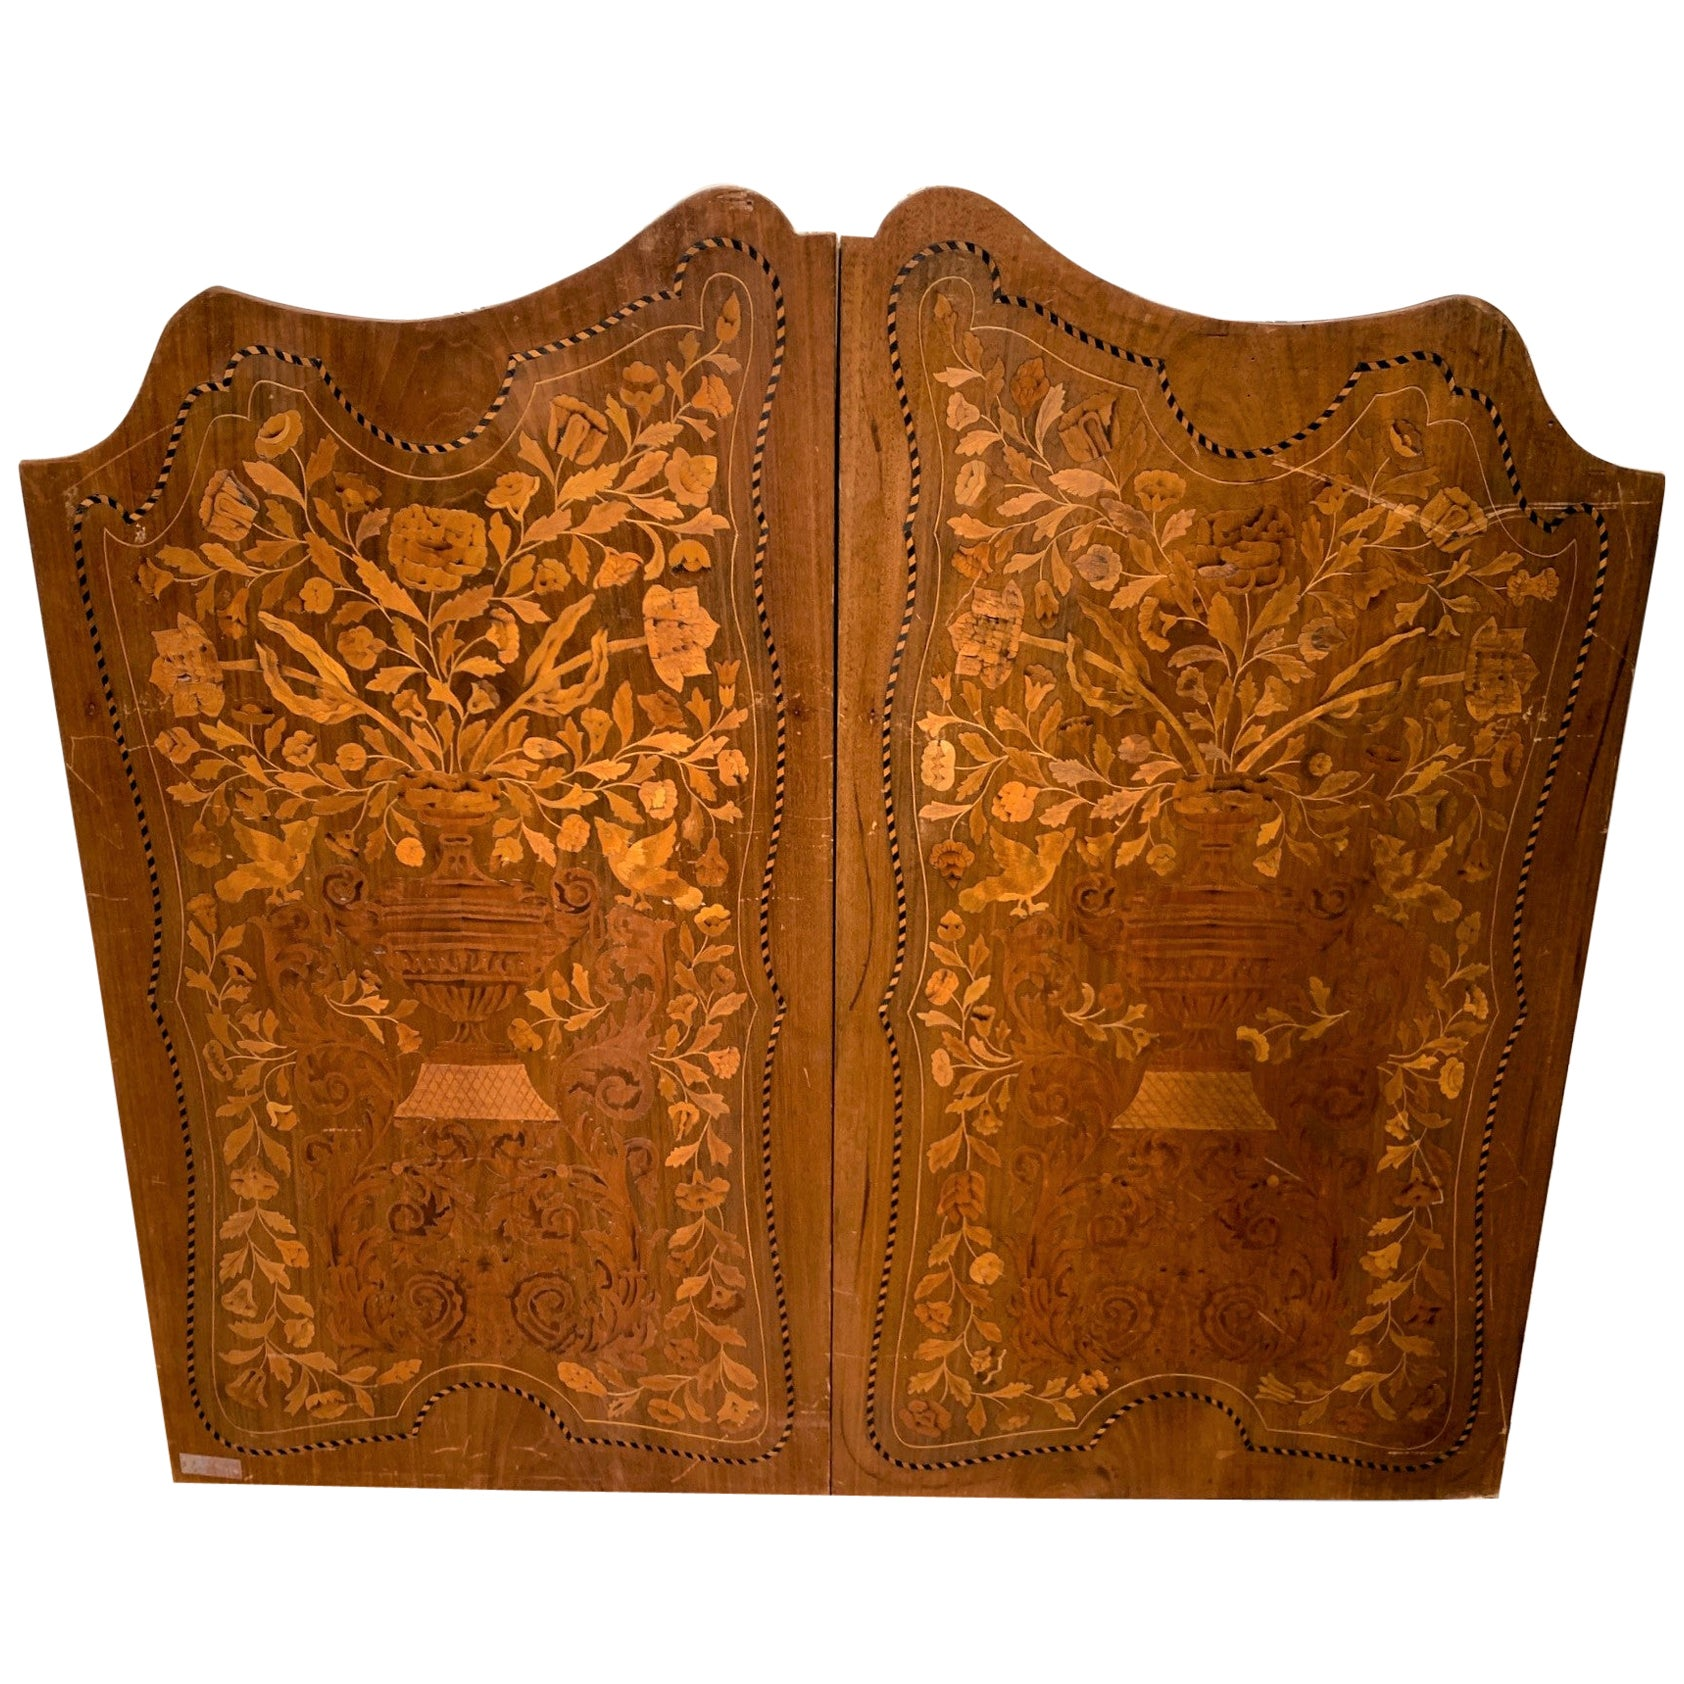 19th Century Pair of Dutch Walnut Marquetry Inlaid Wall Panels